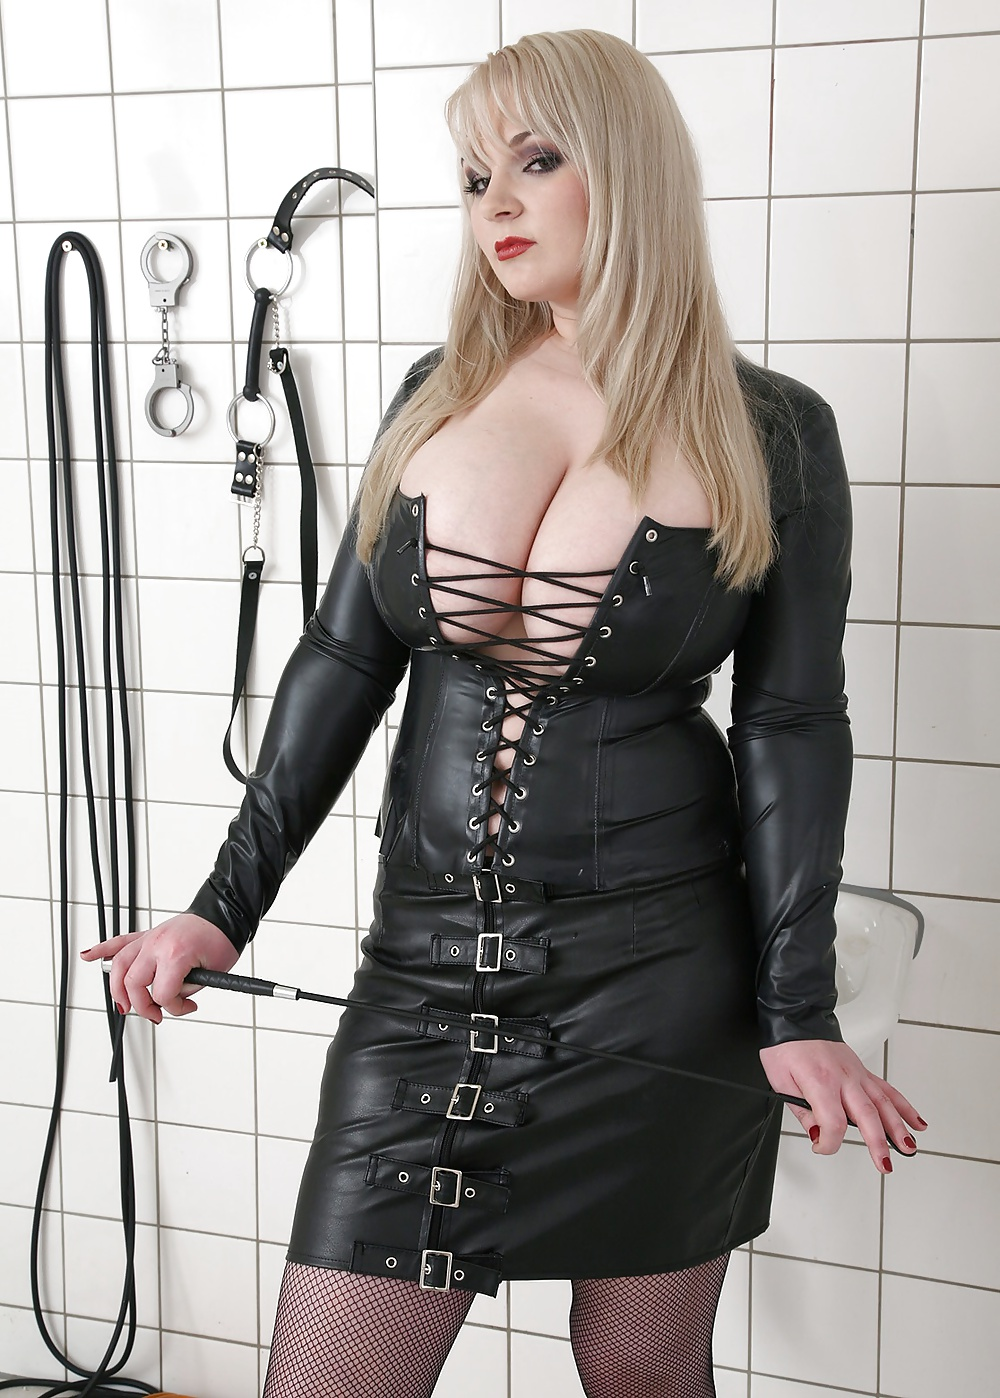 Big busty mistress pictures in free galleries